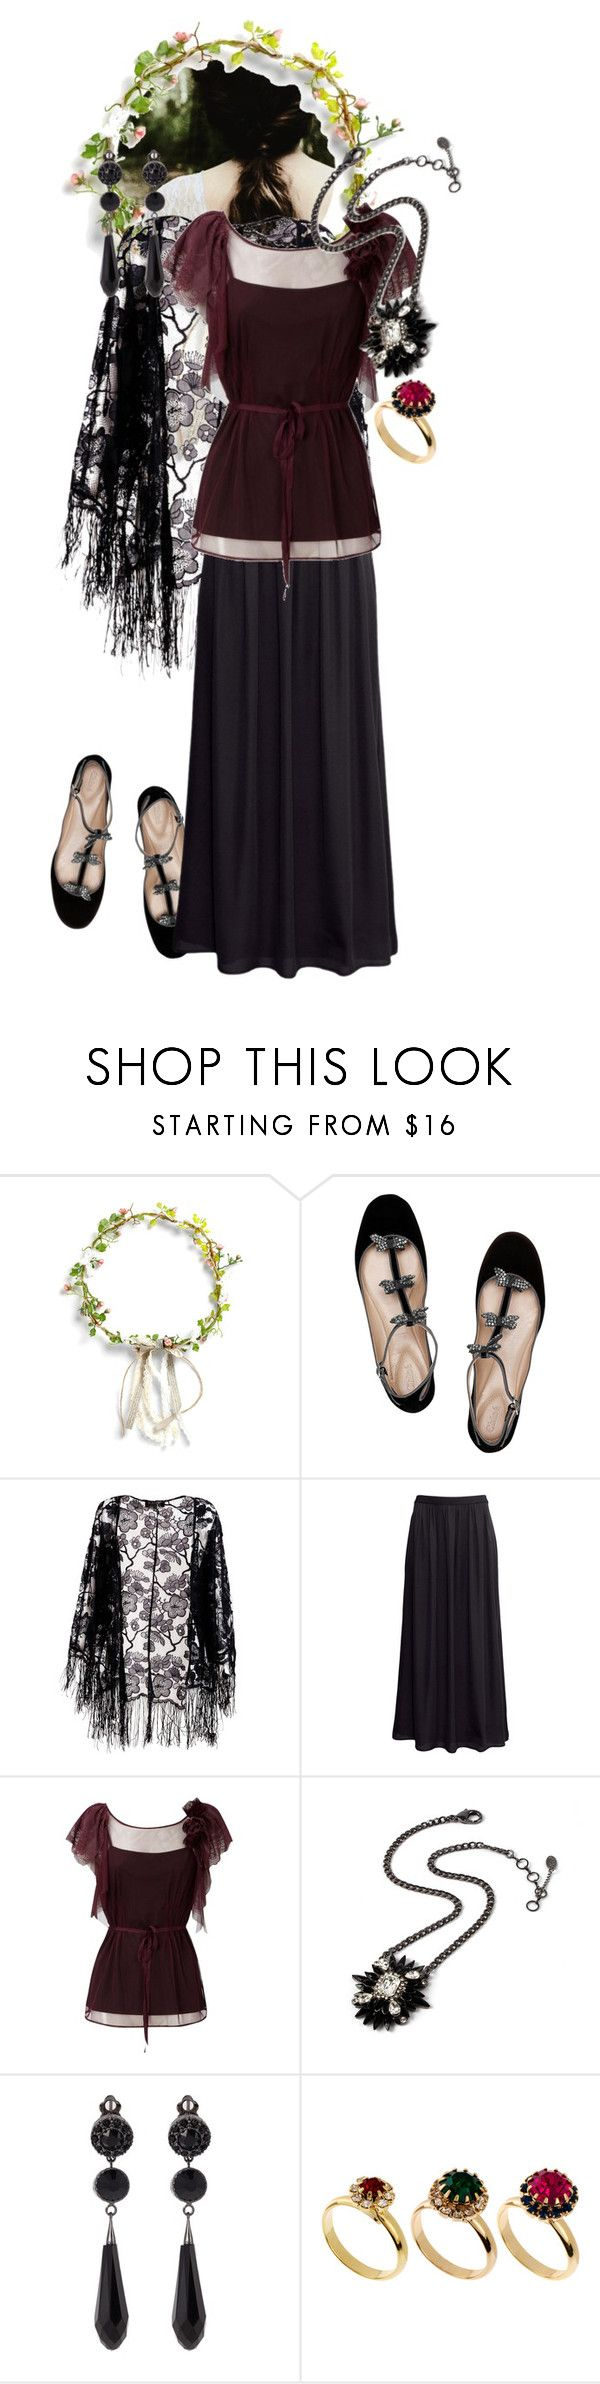 """""""Reign 8"""" by werewolf-gurl ❤ liked on Polyvore featuring Chloé, Pussycat, H&M, Oasis, Amrita Singh, Givenchy and ASOS"""